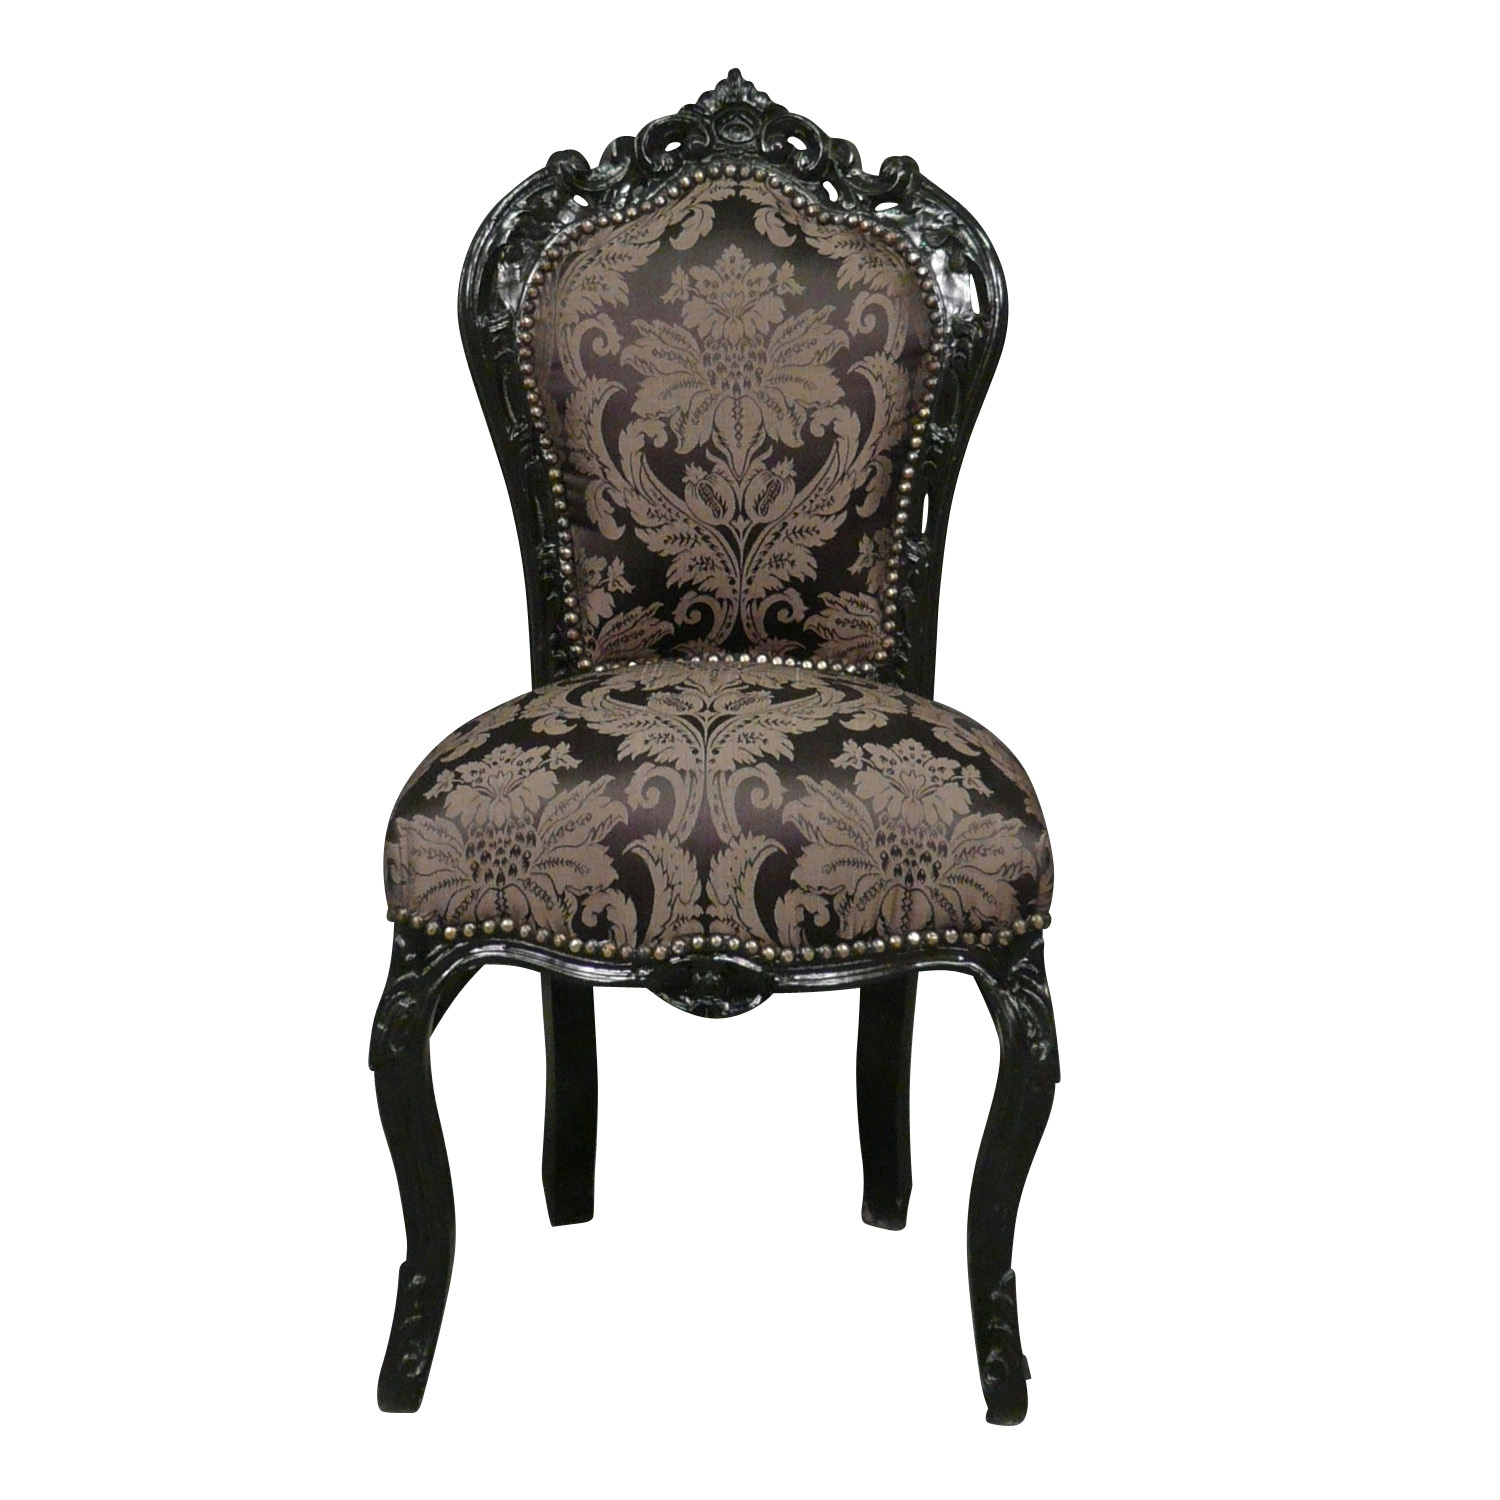 chaise baroque argentee maison design. Black Bedroom Furniture Sets. Home Design Ideas